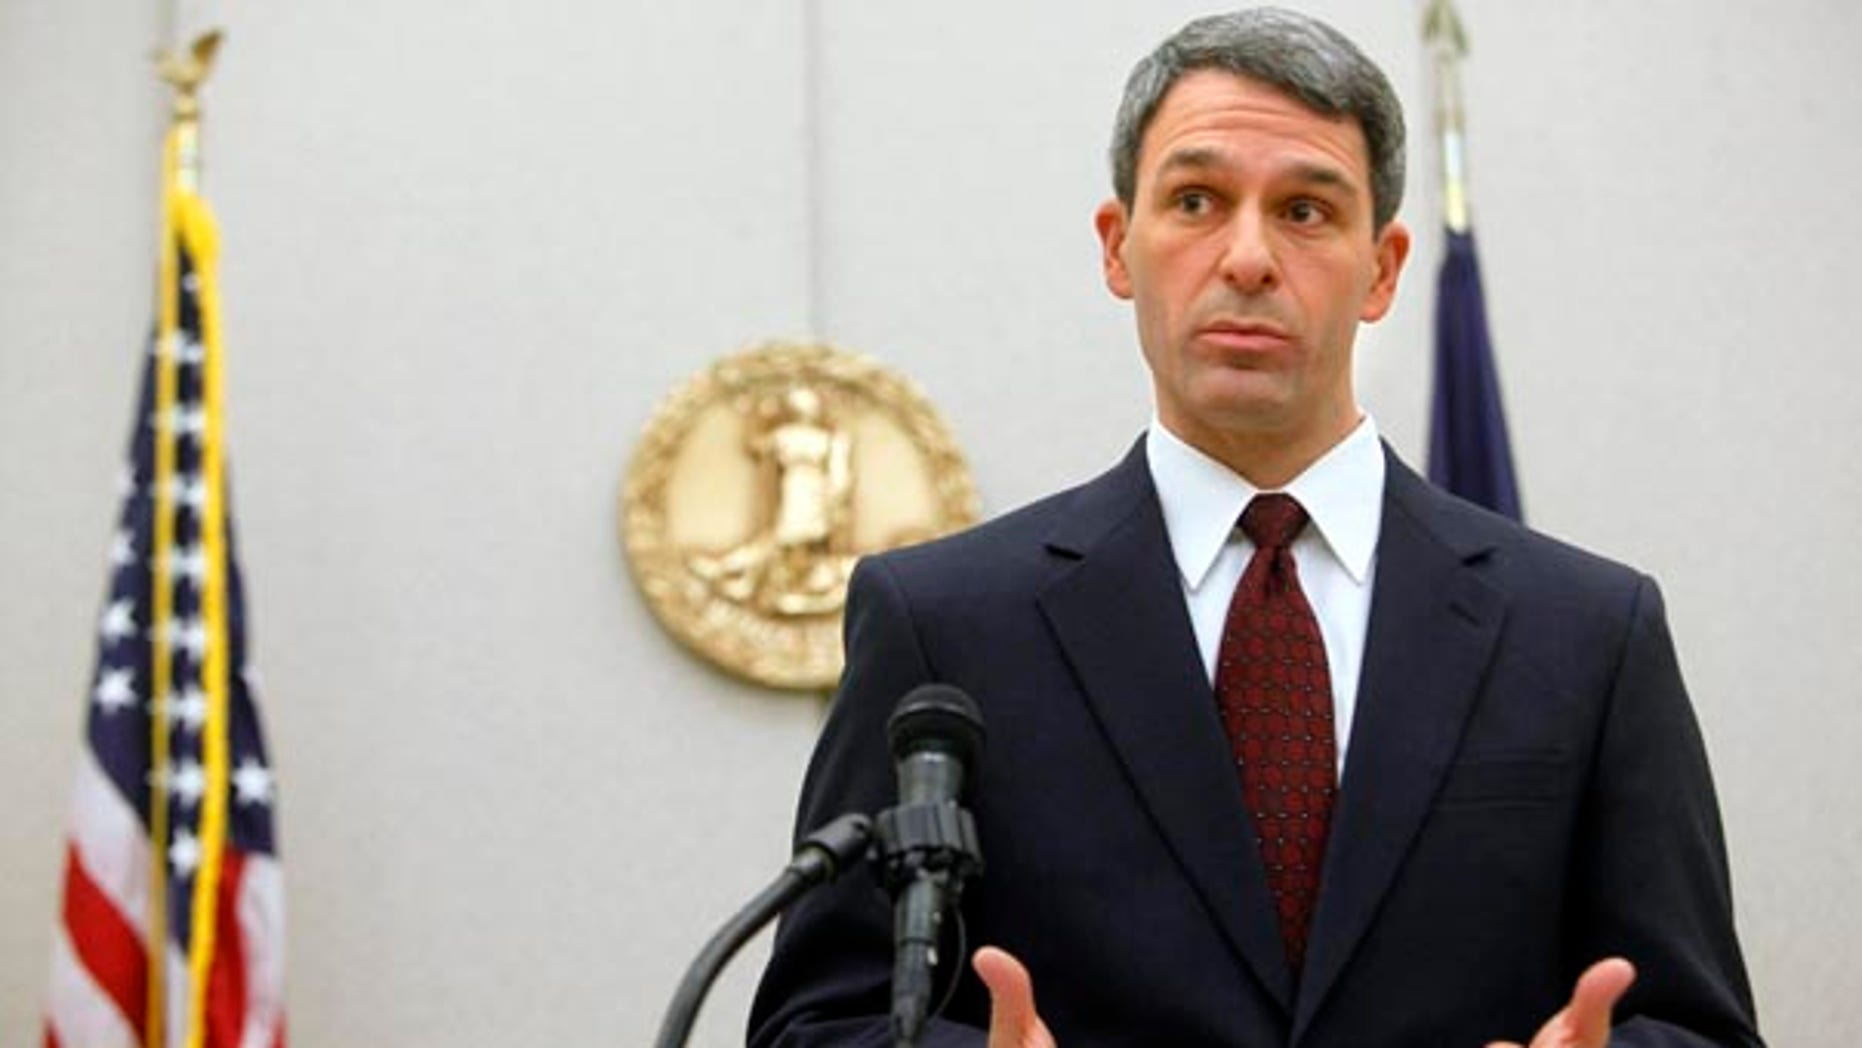 FILE: In this Dec. 13, 2010 photo, Virginia Attorney General Kenneth Cuccinelli speaks about the ruling from U.S. District Judge Henry E. Hudson, who decided in favor of the attorney general's claim that the individual mandate in the health care law is unconstitutional.